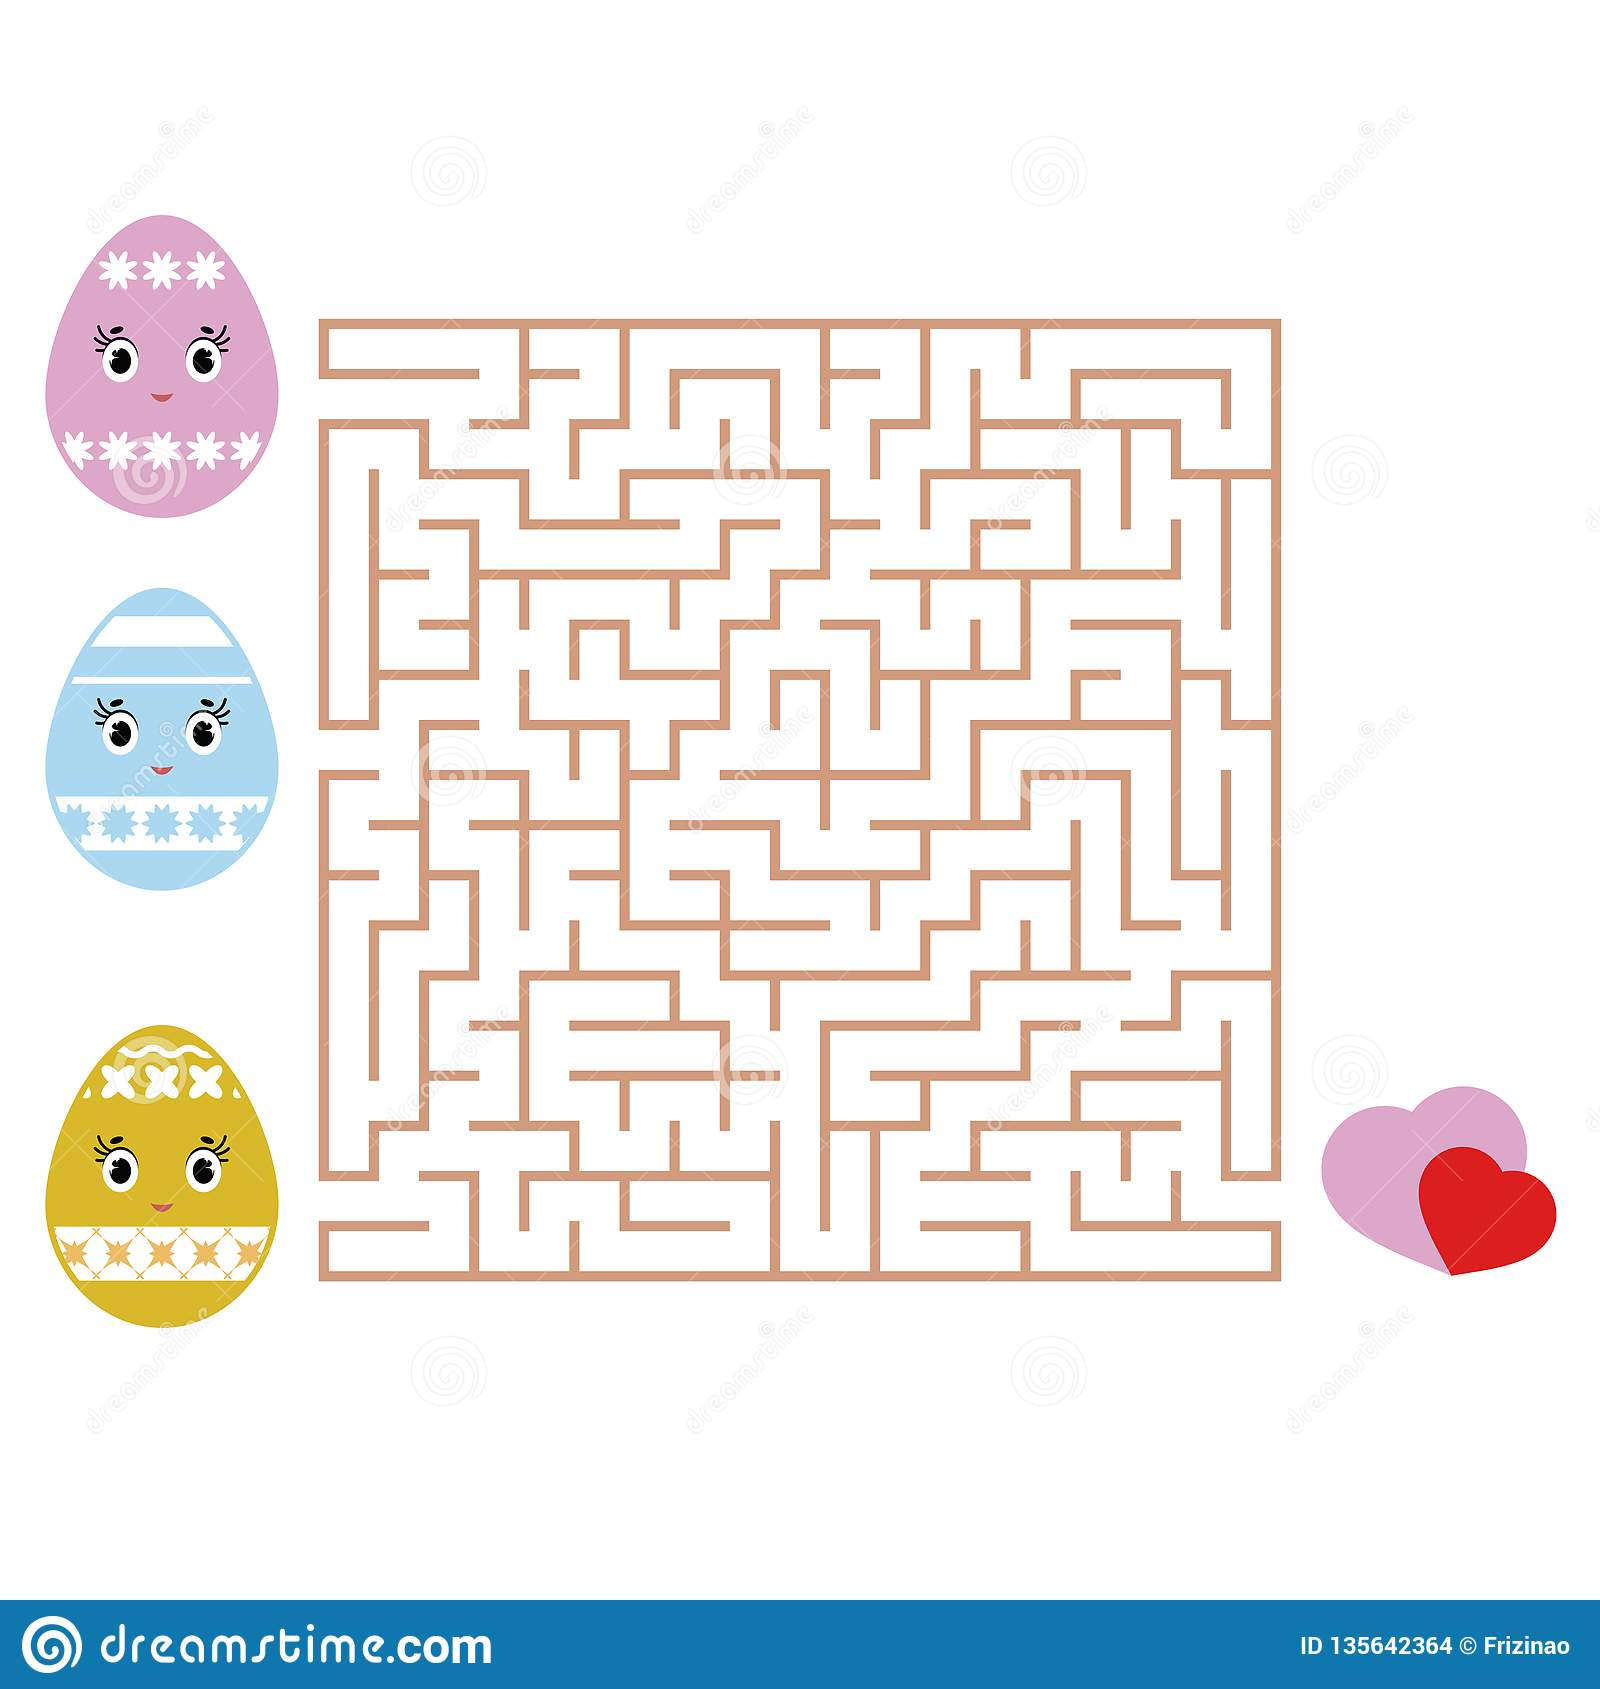 Colored Square Labyrinth Kids Worksheets Activity Page